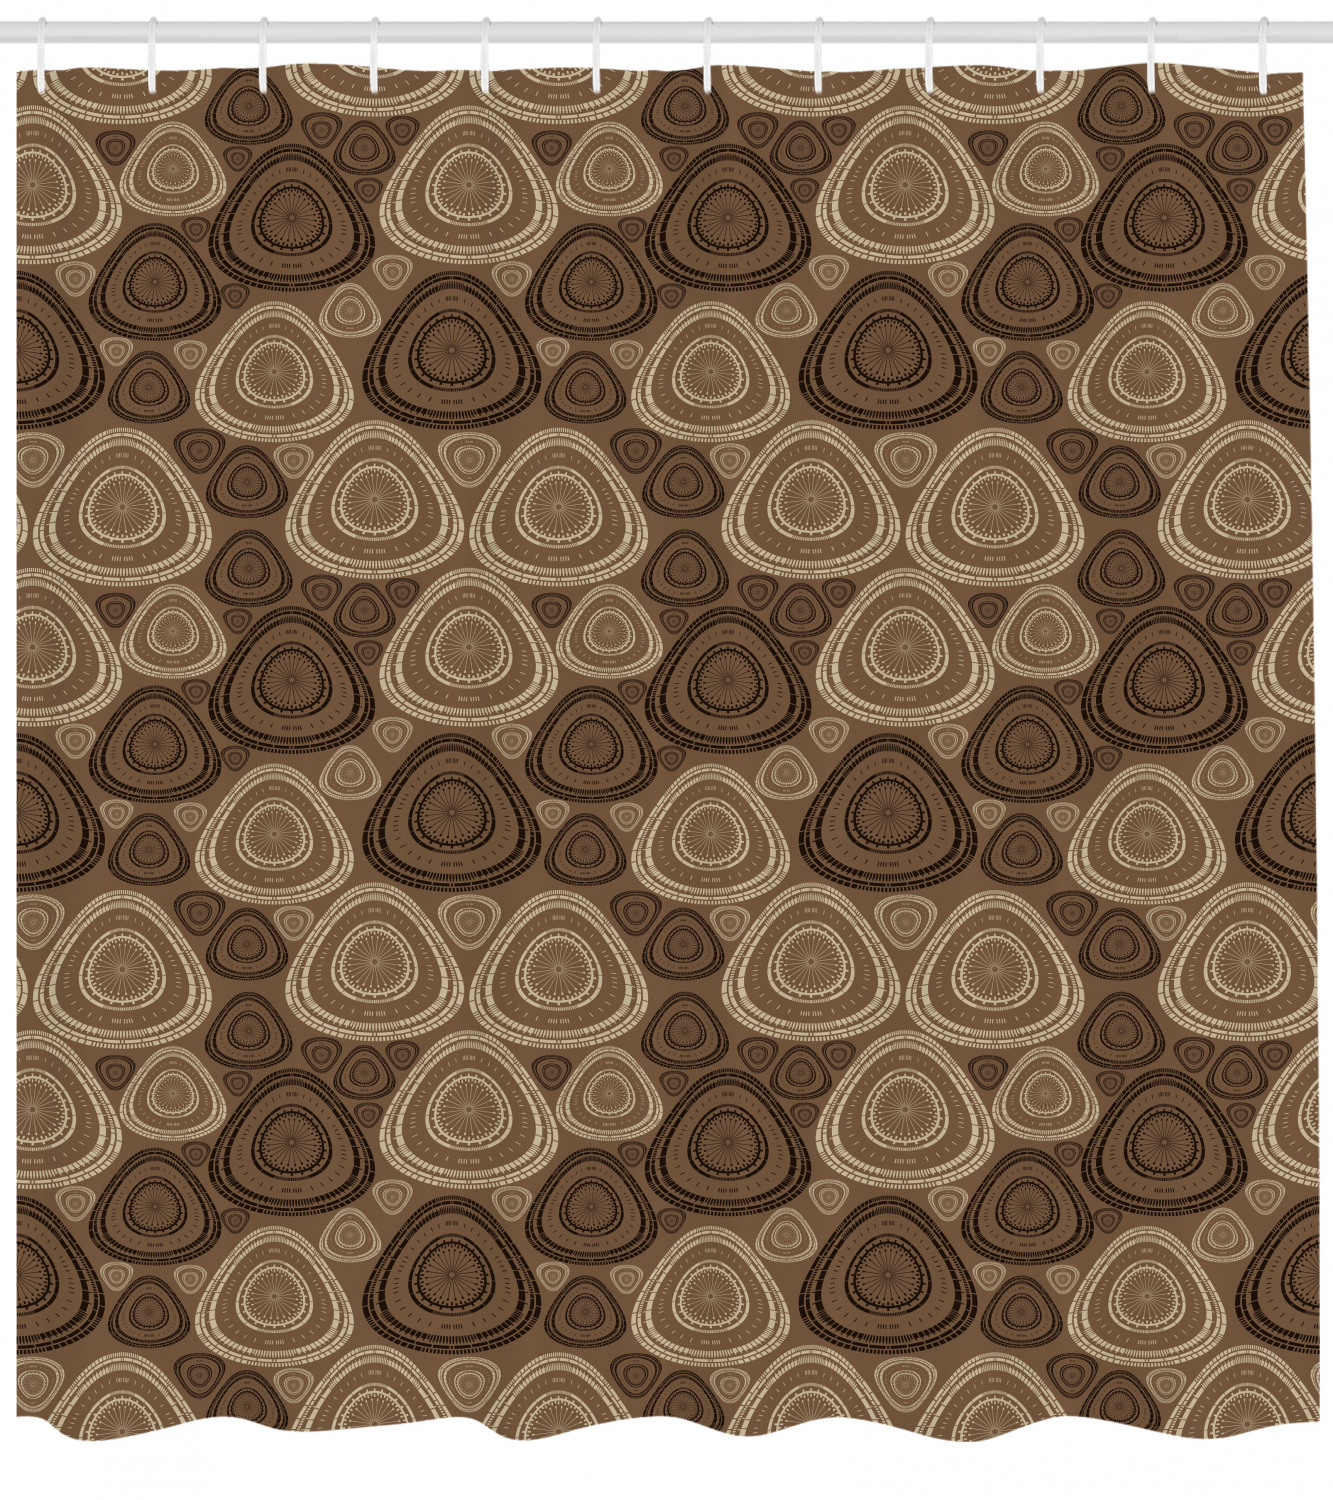 Brown And Ivory Shower Curtain Circles And Oval Triangle Shapes On Brown Toned Background Fabric Bathroom Set With Hooks 69w X 70l Inches Brown